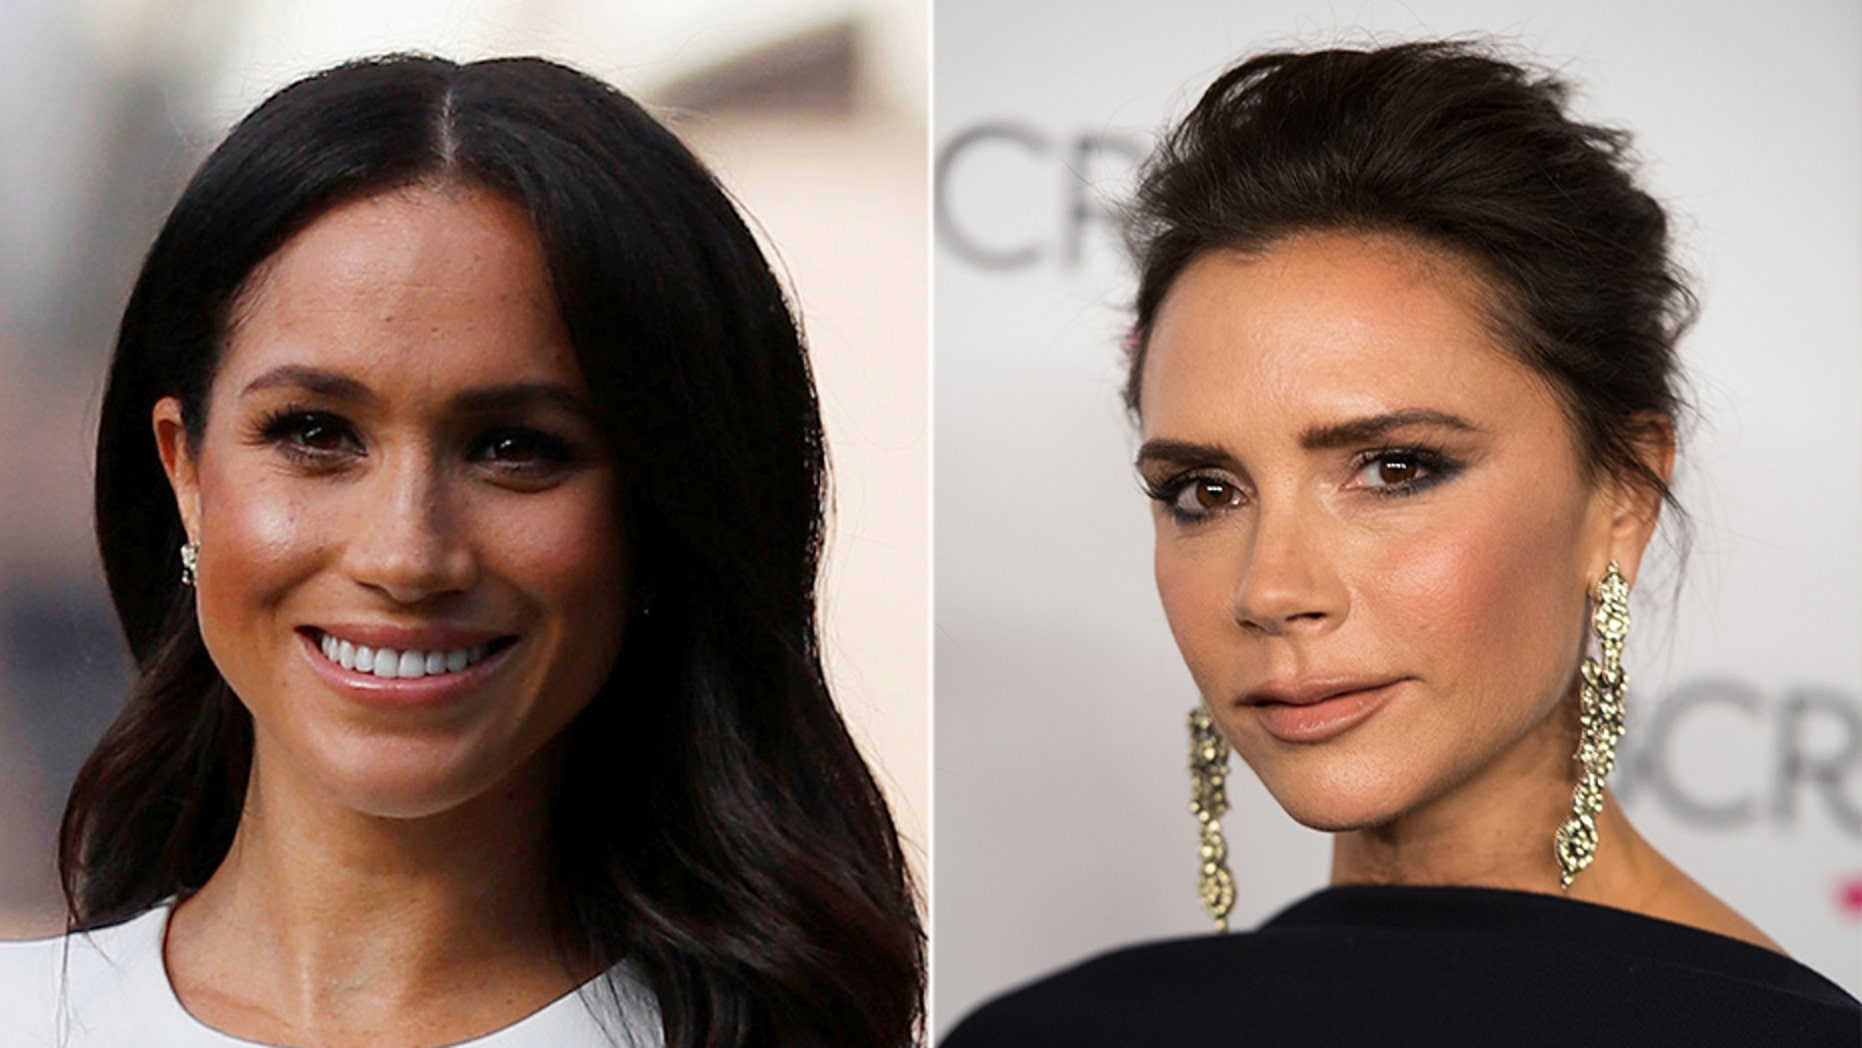 Meghan Markle revealed why she doesn't wear dresses from pal Victoria Beckham's fashion line.